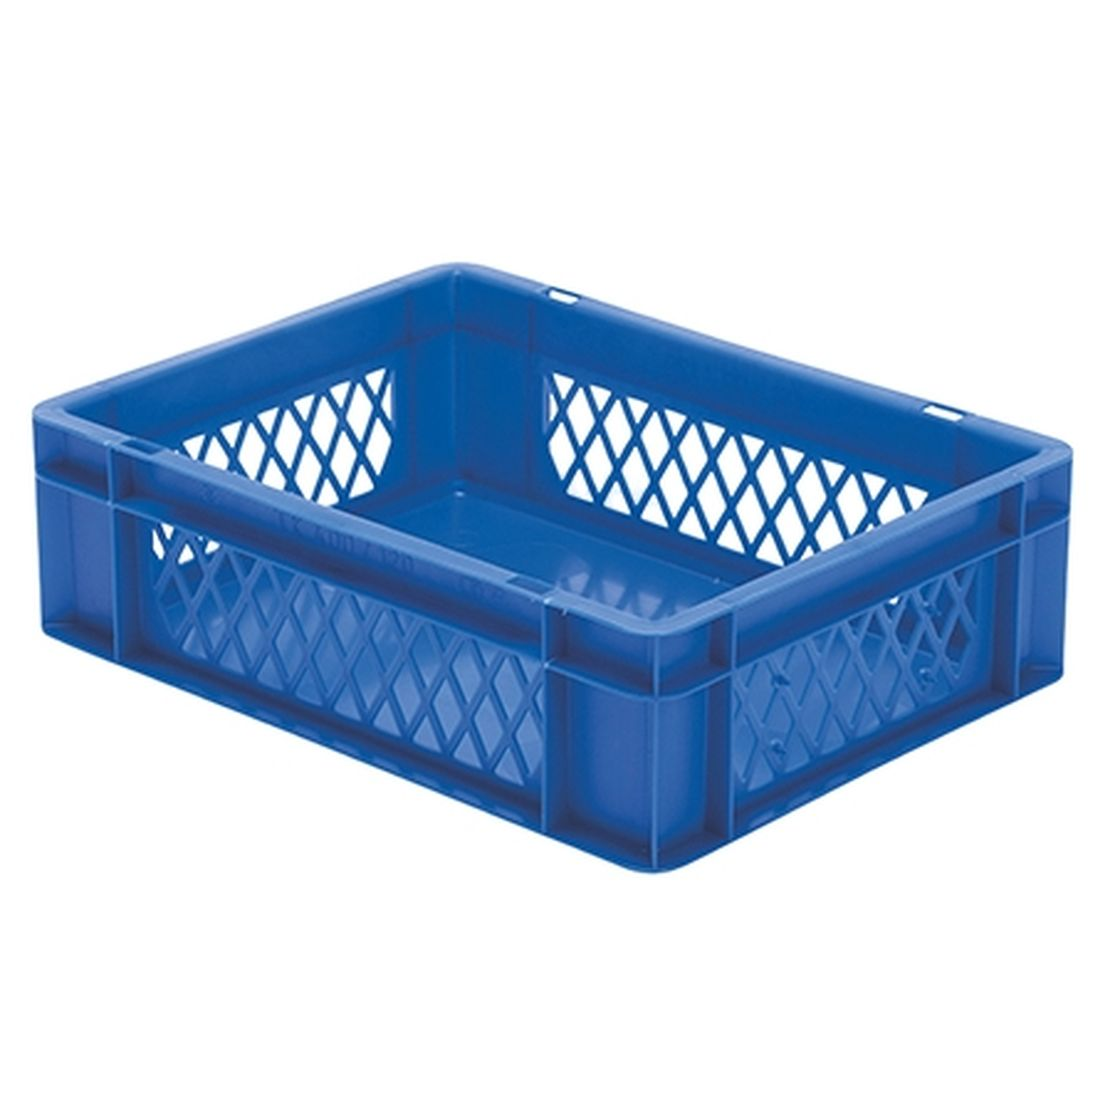 Transport stapelkasten tk 400 120 1 400x300x120 mm lxbxh for Aufstellpool 400 x 120